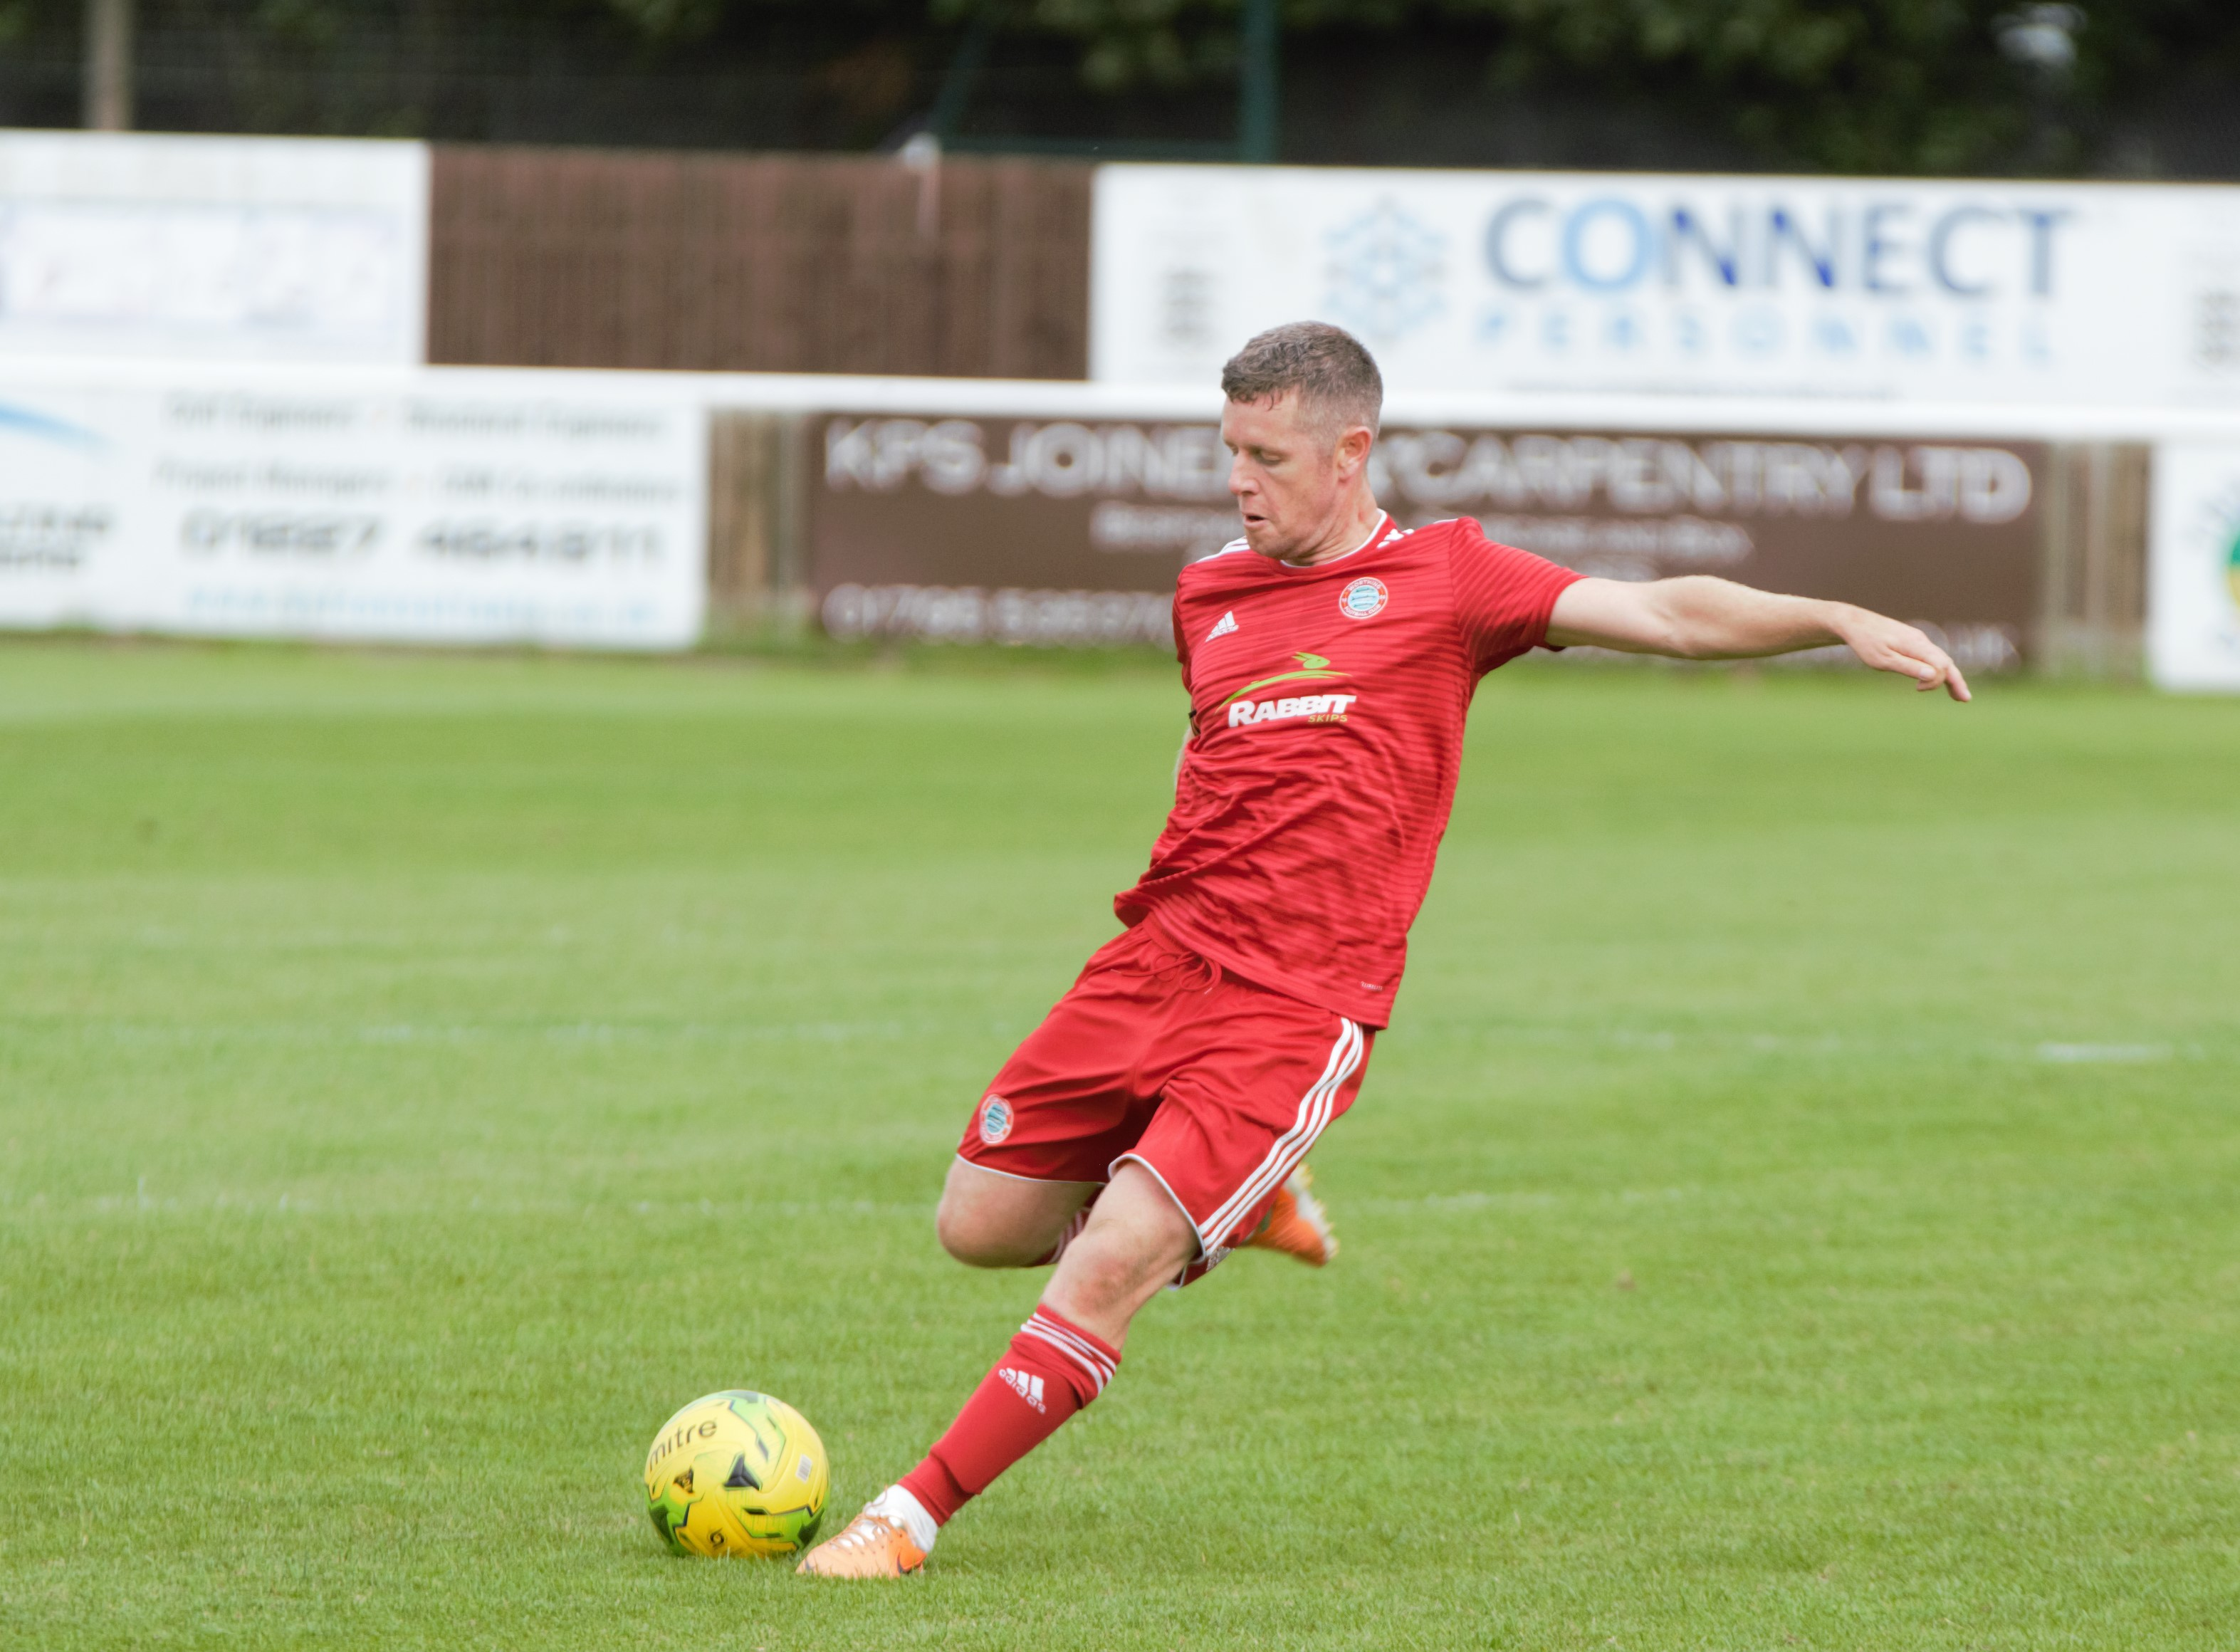 Read the full article - HIGHLIGHTS: Faversham Town 1-3 Worthing [A] – FA Cup